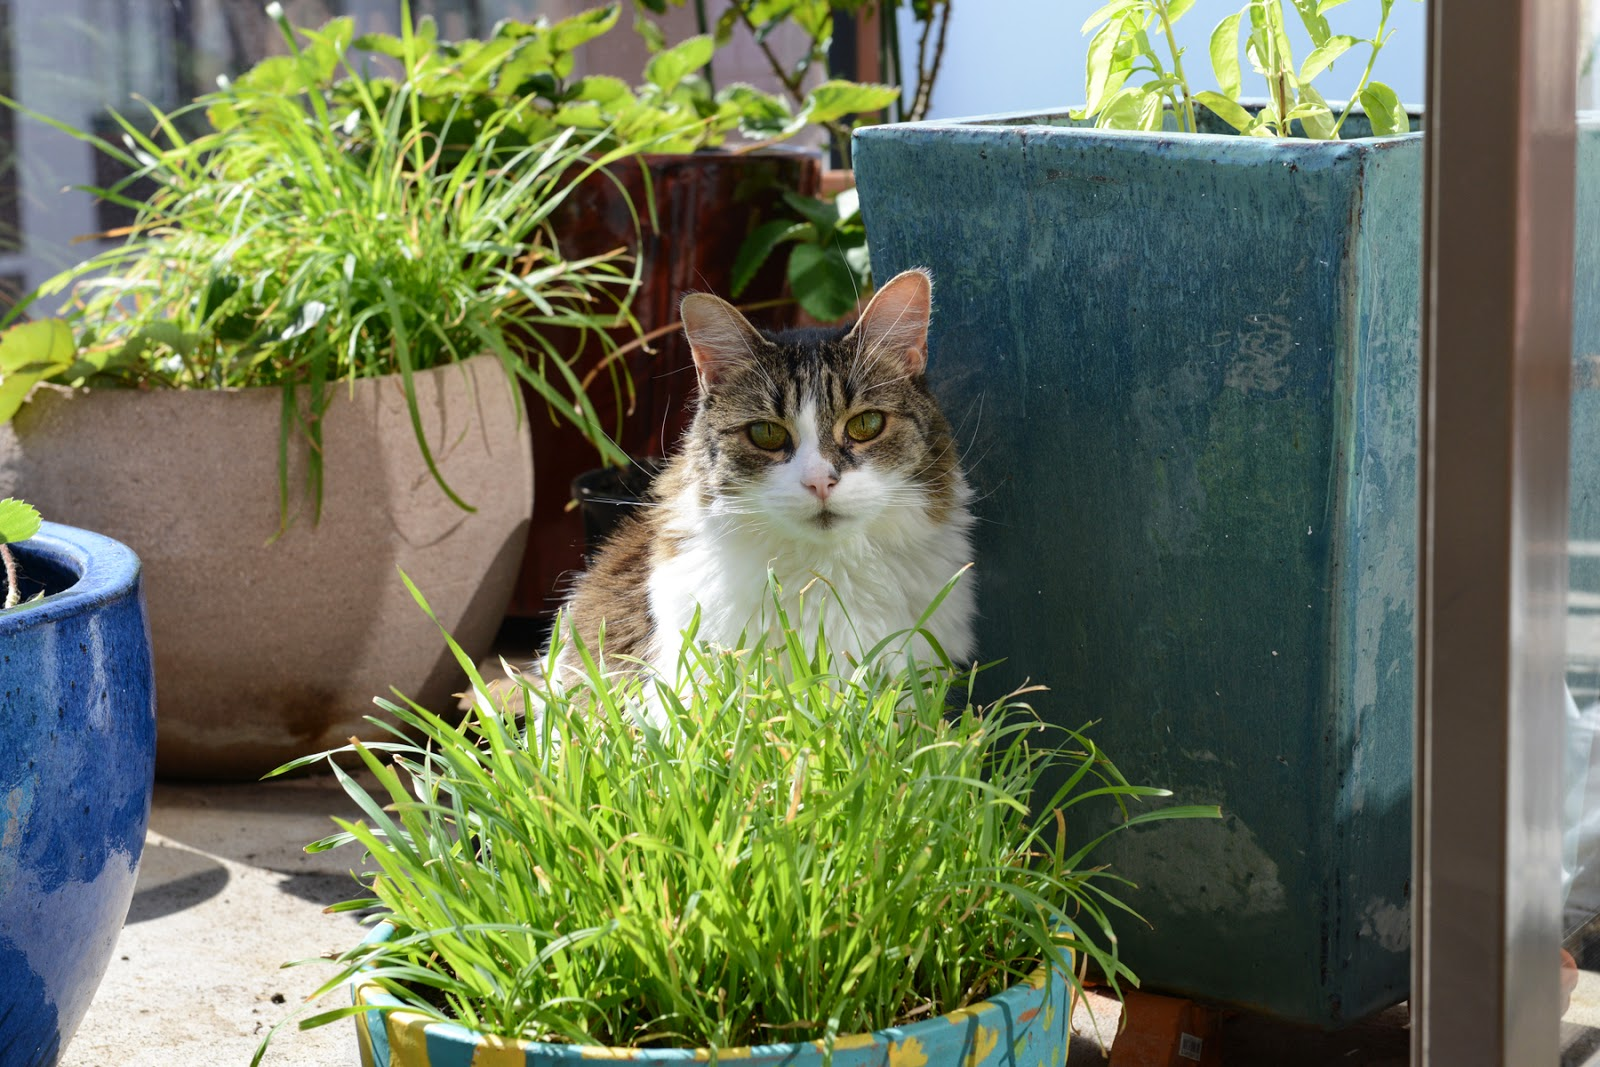 Cat grass cats plants apartment cats